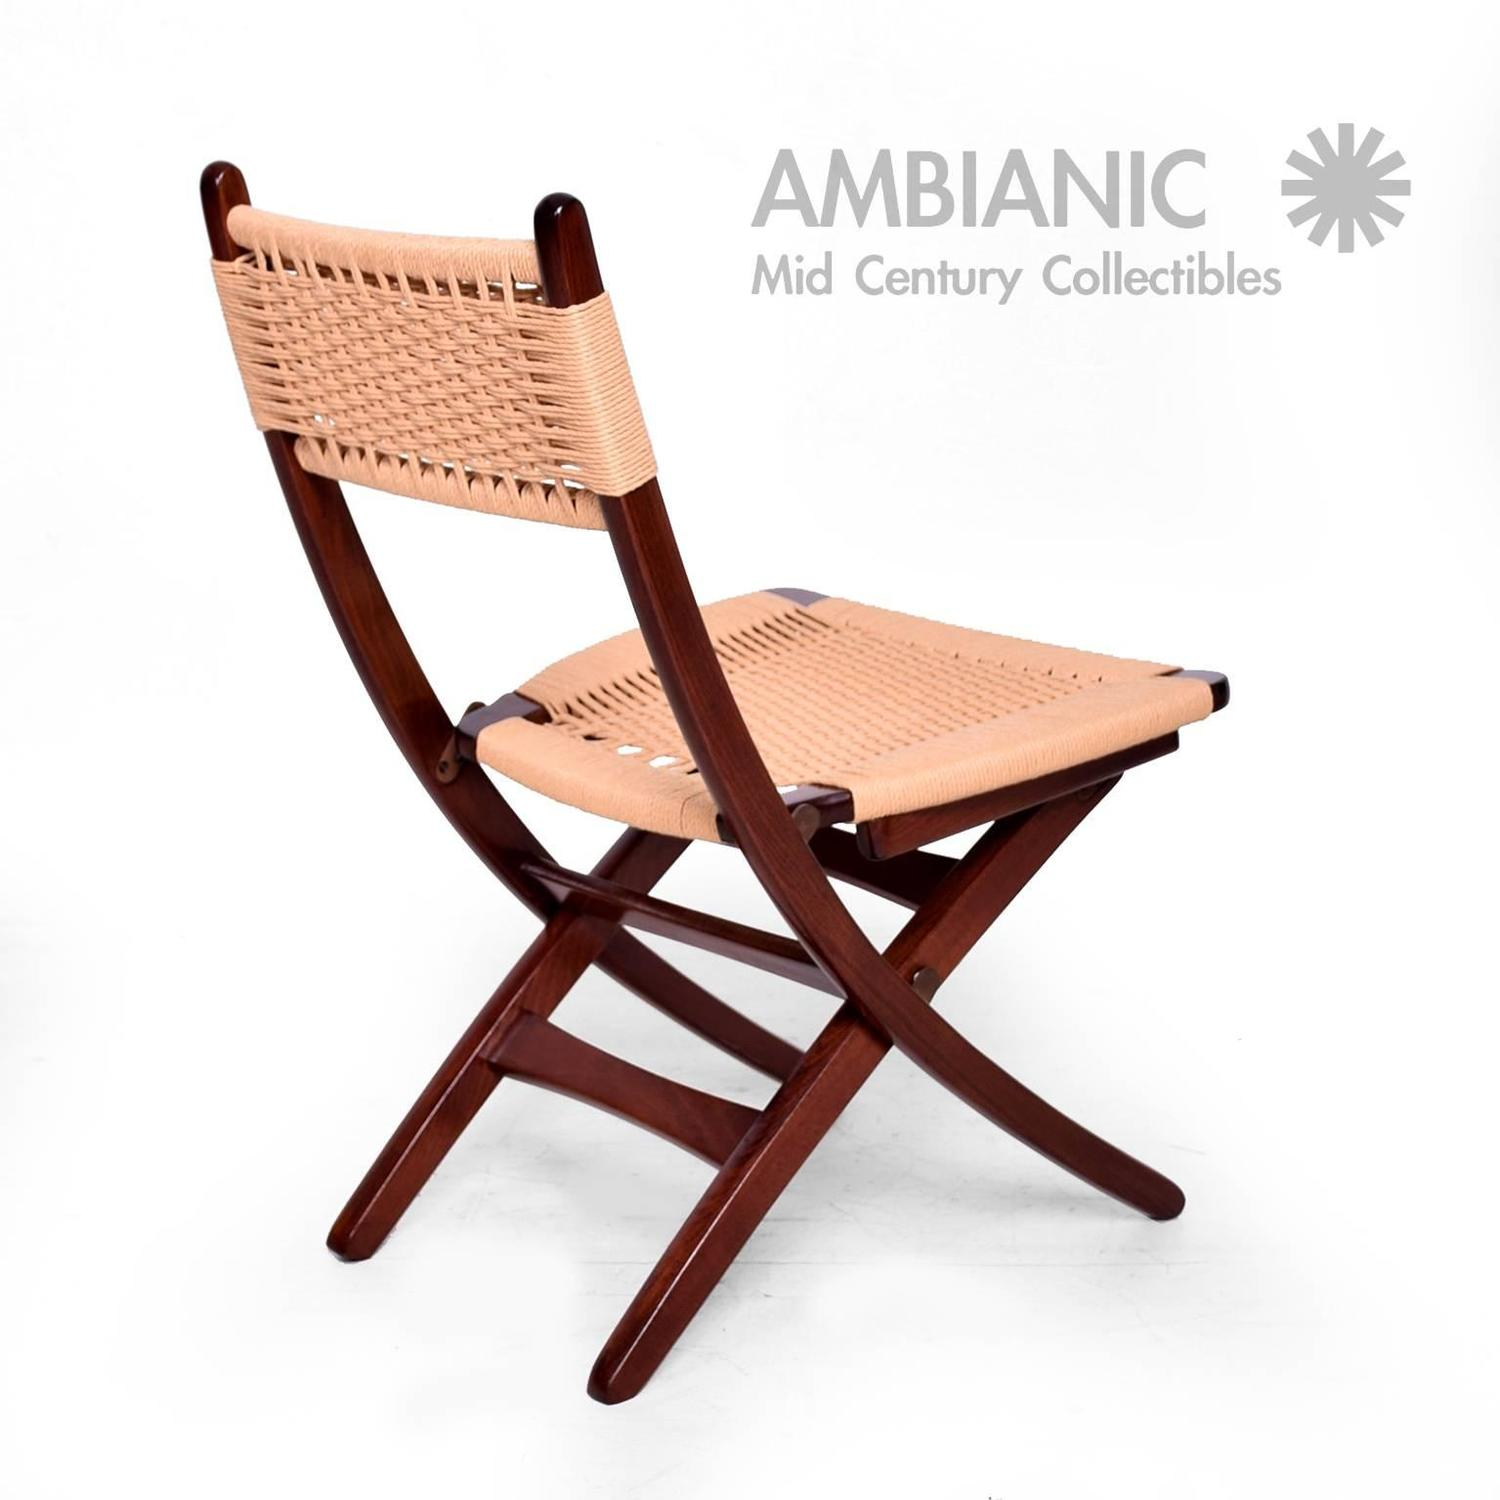 Mid Century Danish Modern Rope Folding Chairs Wegner Style For Sale at 1stdibs